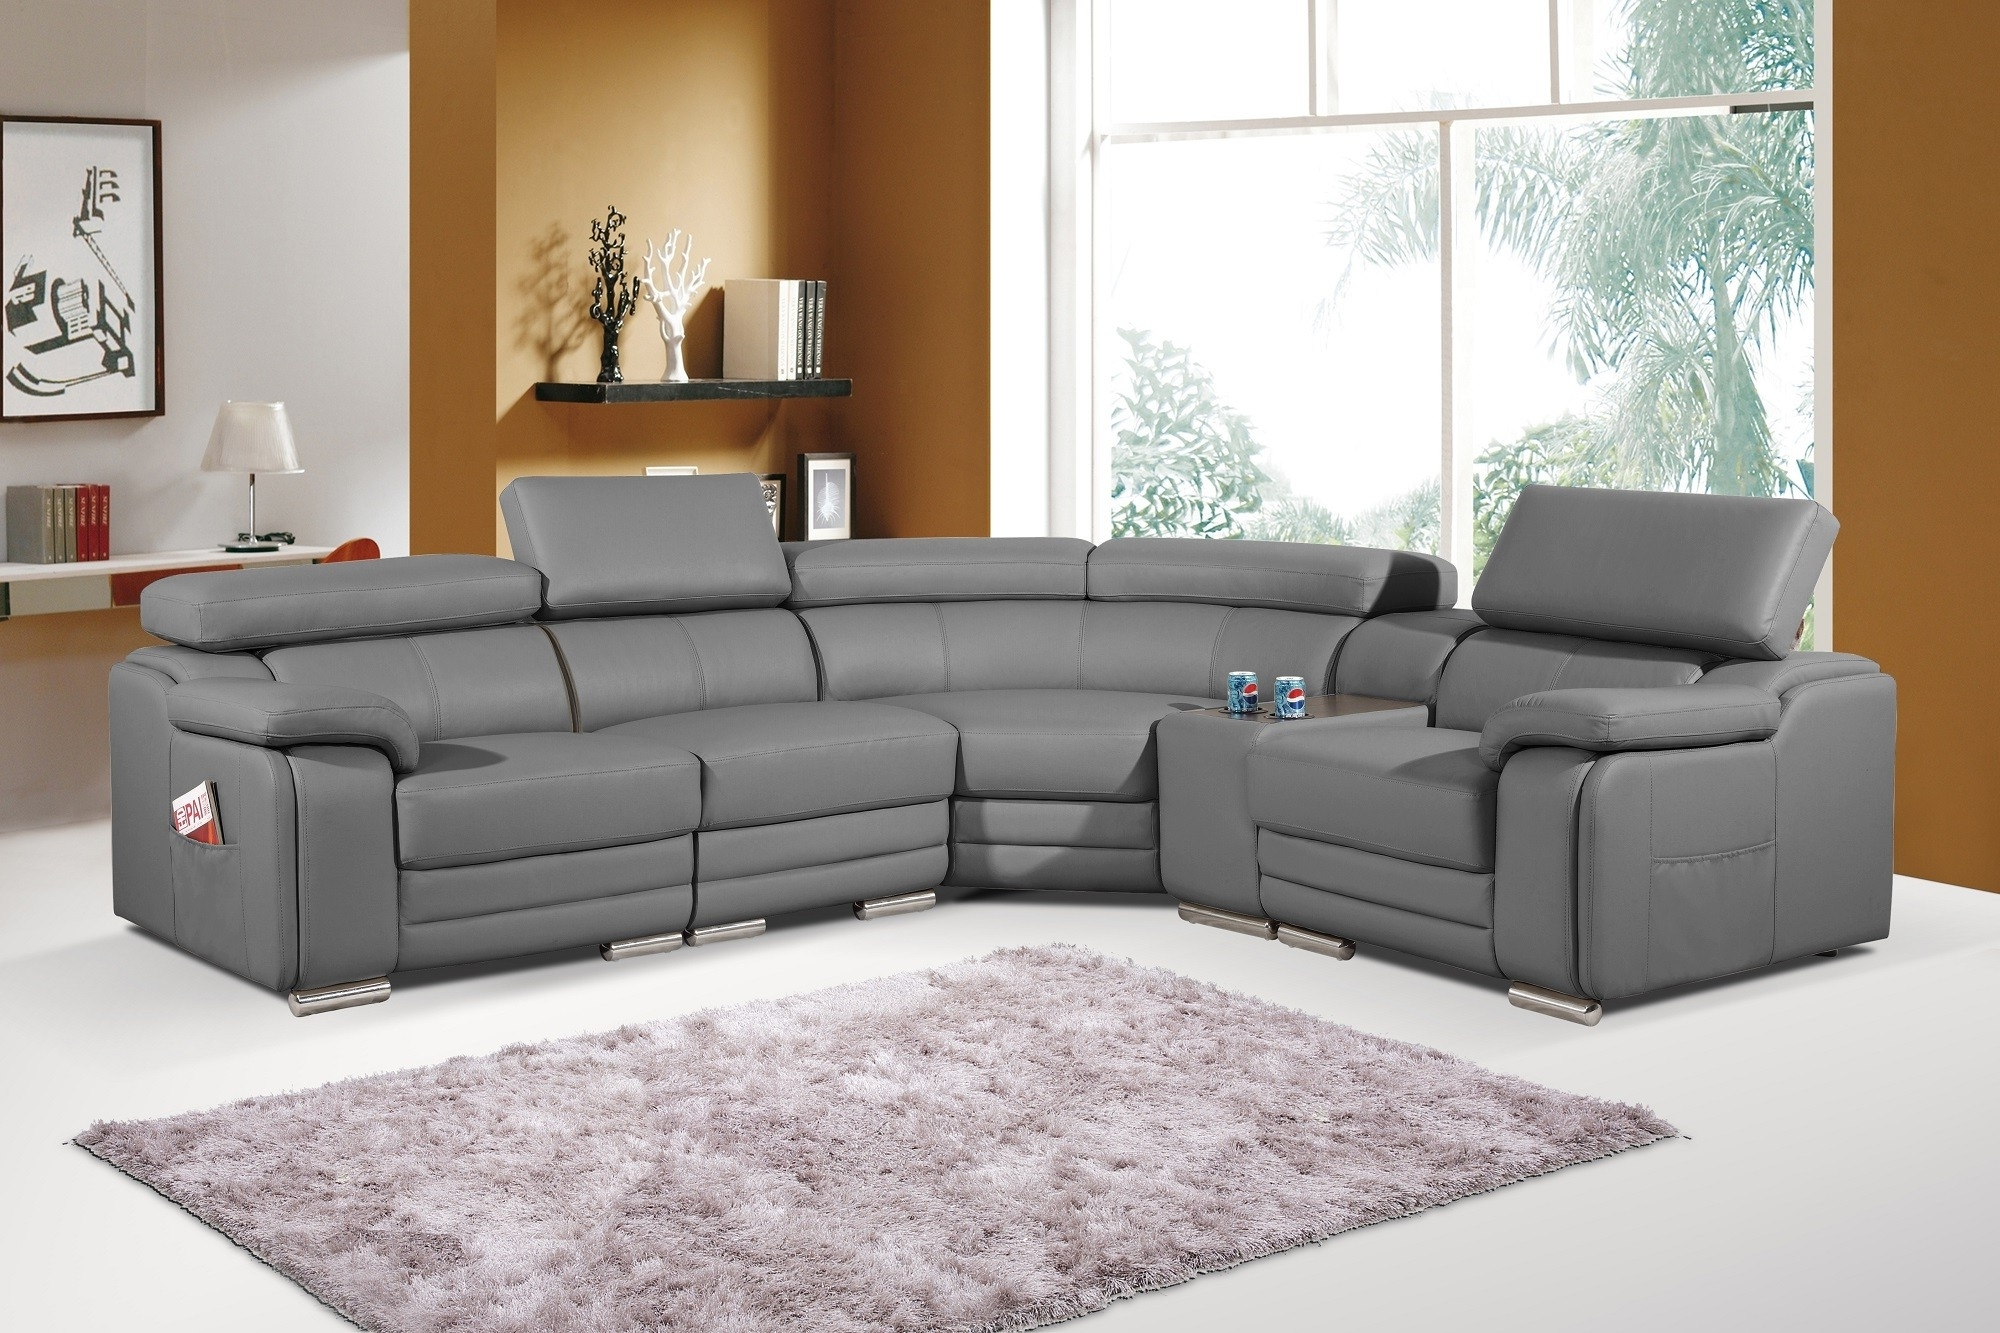 Best And Newest Leather Corner Sofas Inside Dakota Grey Bonded Leather Corner Sofa Left/hand (View 1 of 20)